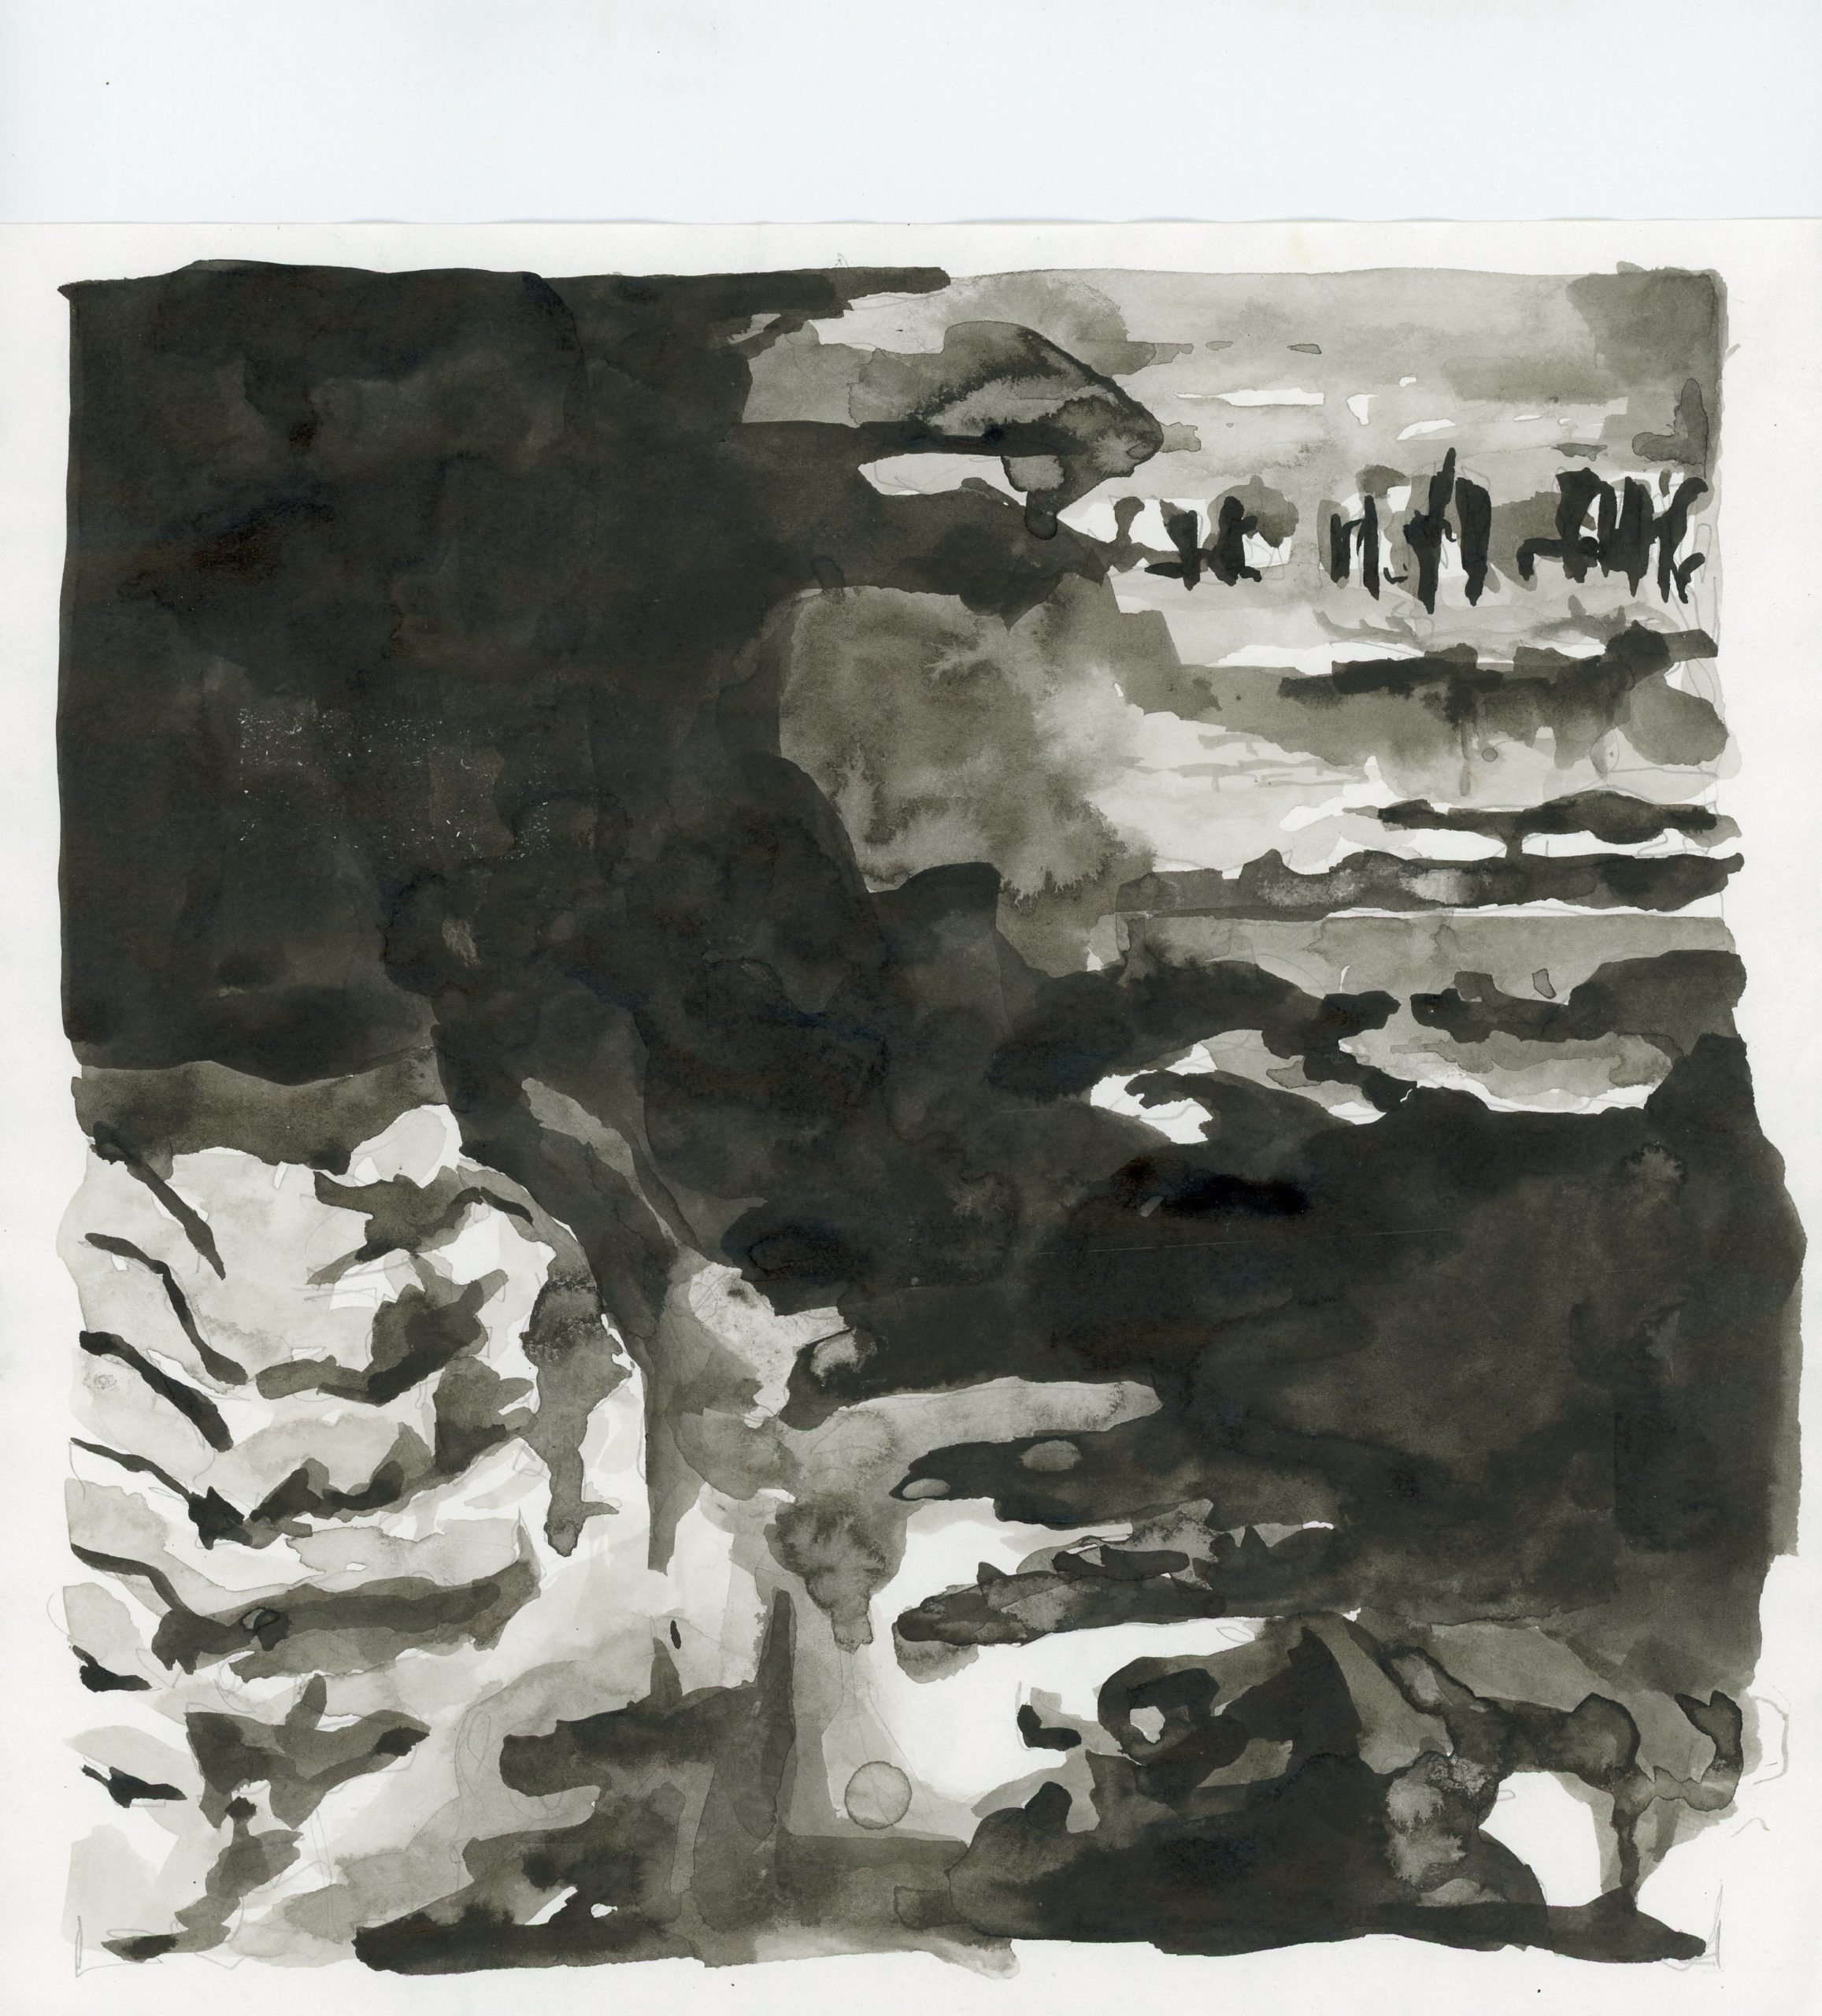 Anna Ridler, Fall of the House of Usher II, 1_613, ink on paper, 21 x 21 cm, 2017